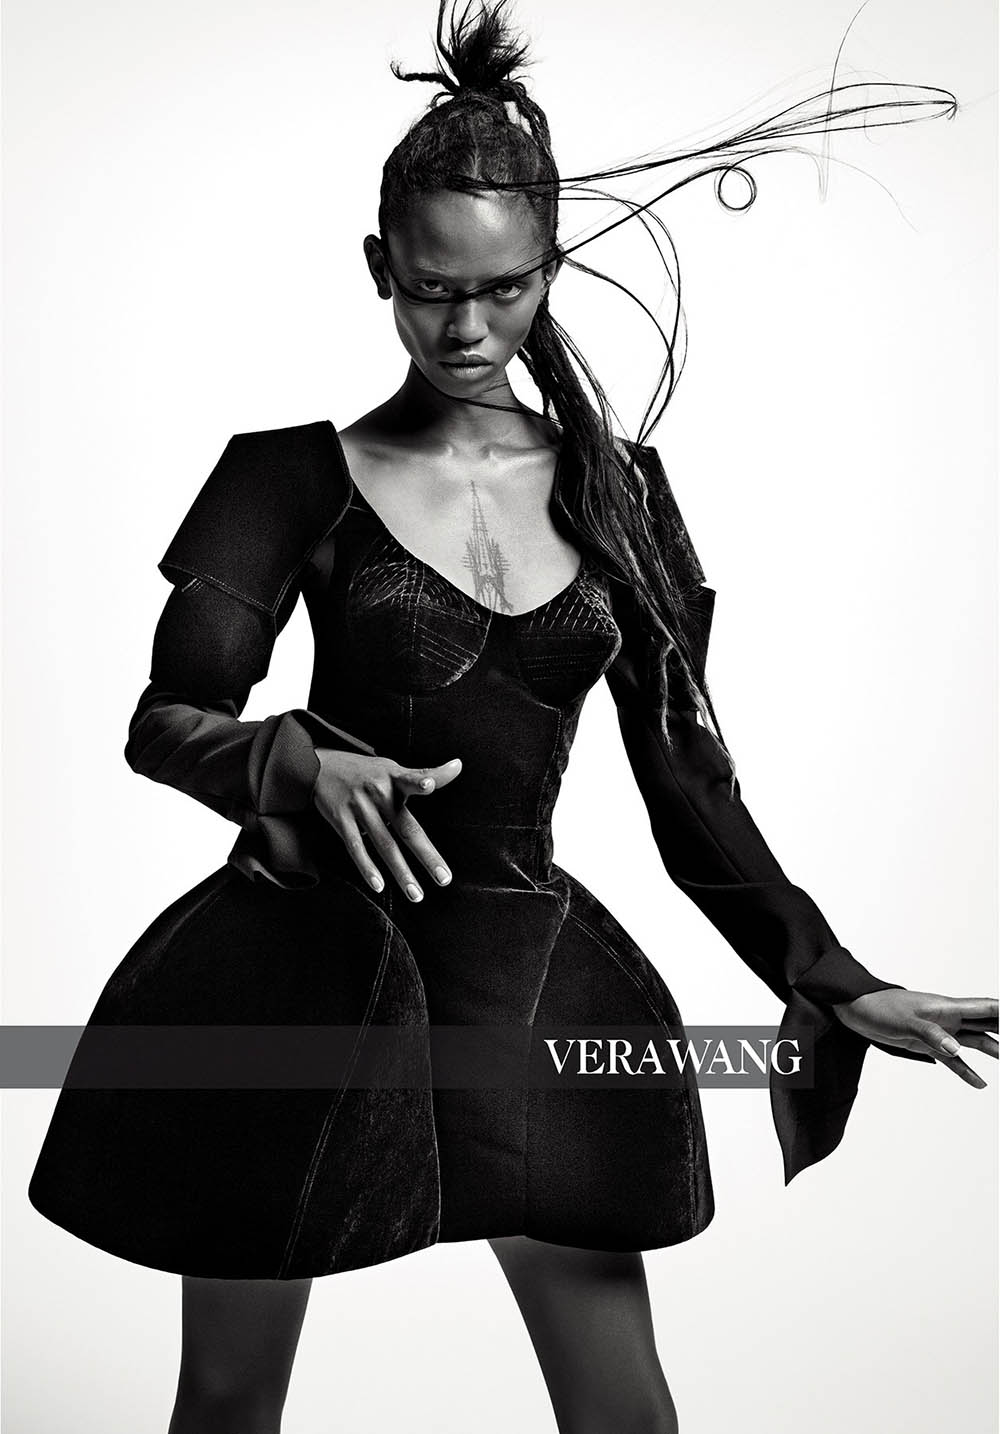 Vera Wang Fall Winter 2018 Campaign